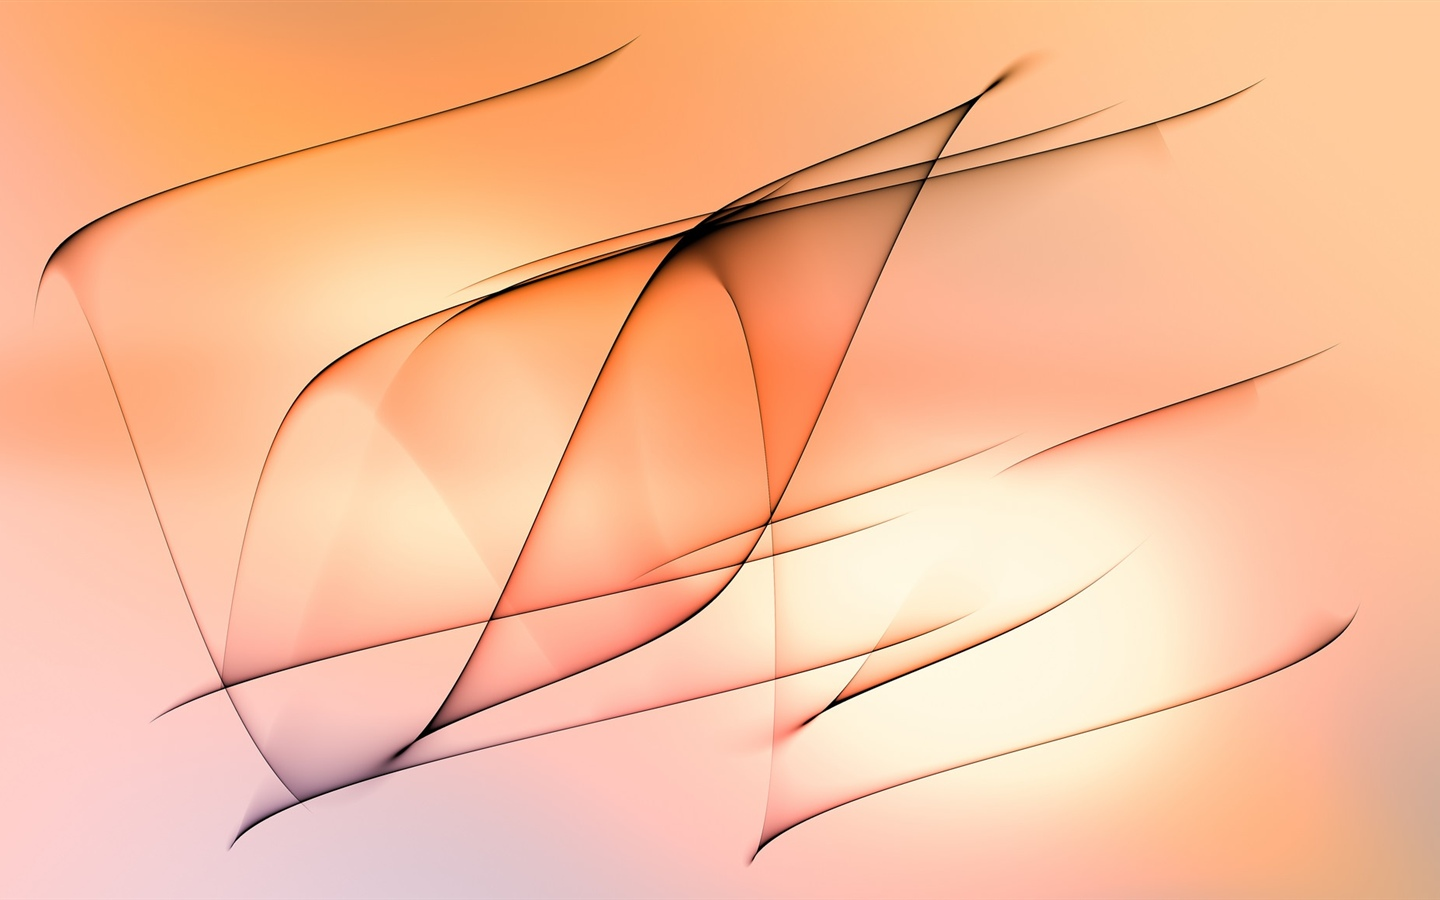 Abstract lines, orange background 1440x900 wallpaper